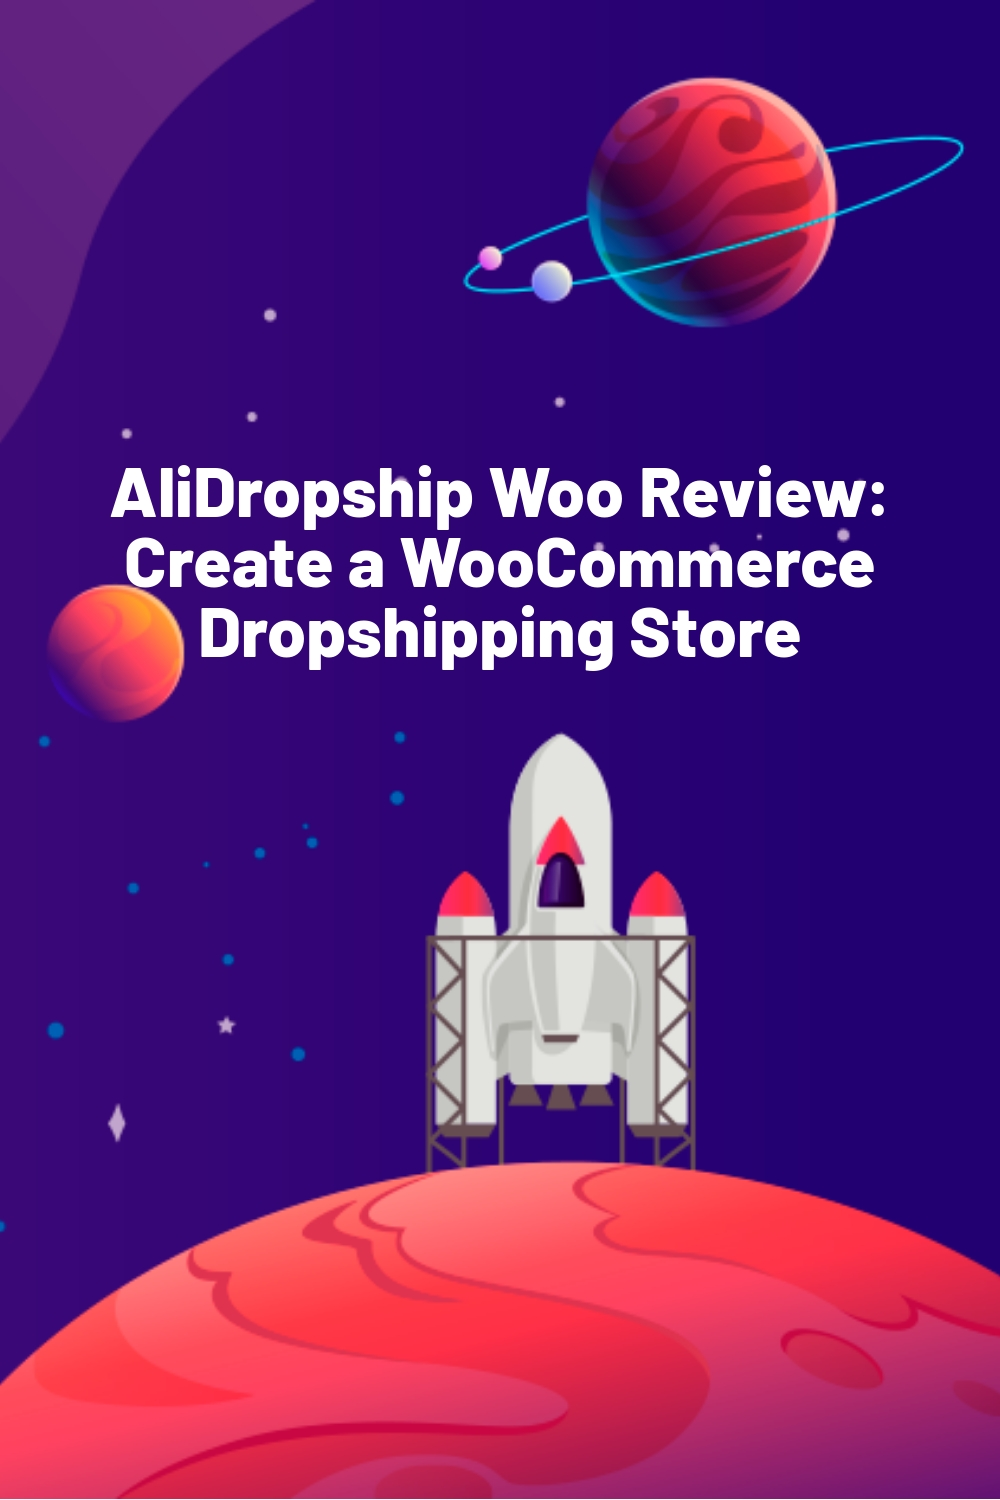 AliDropship Woo Review: Create a WooCommerce Dropshipping Store